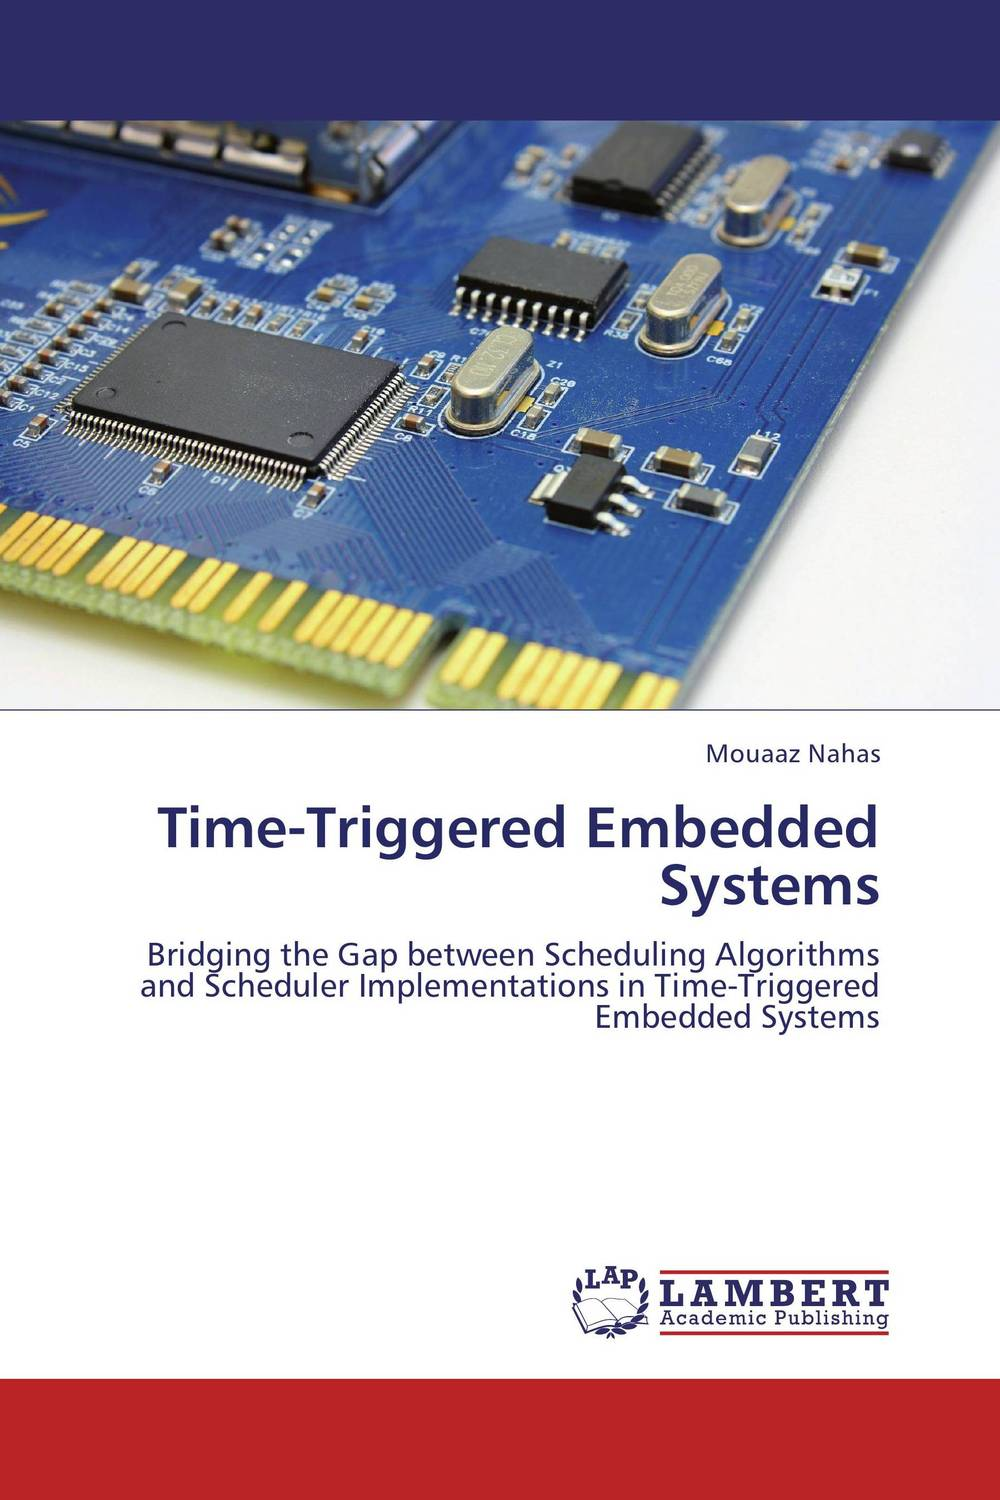 Time-Triggered Embedded Systems embedded systems world class designs